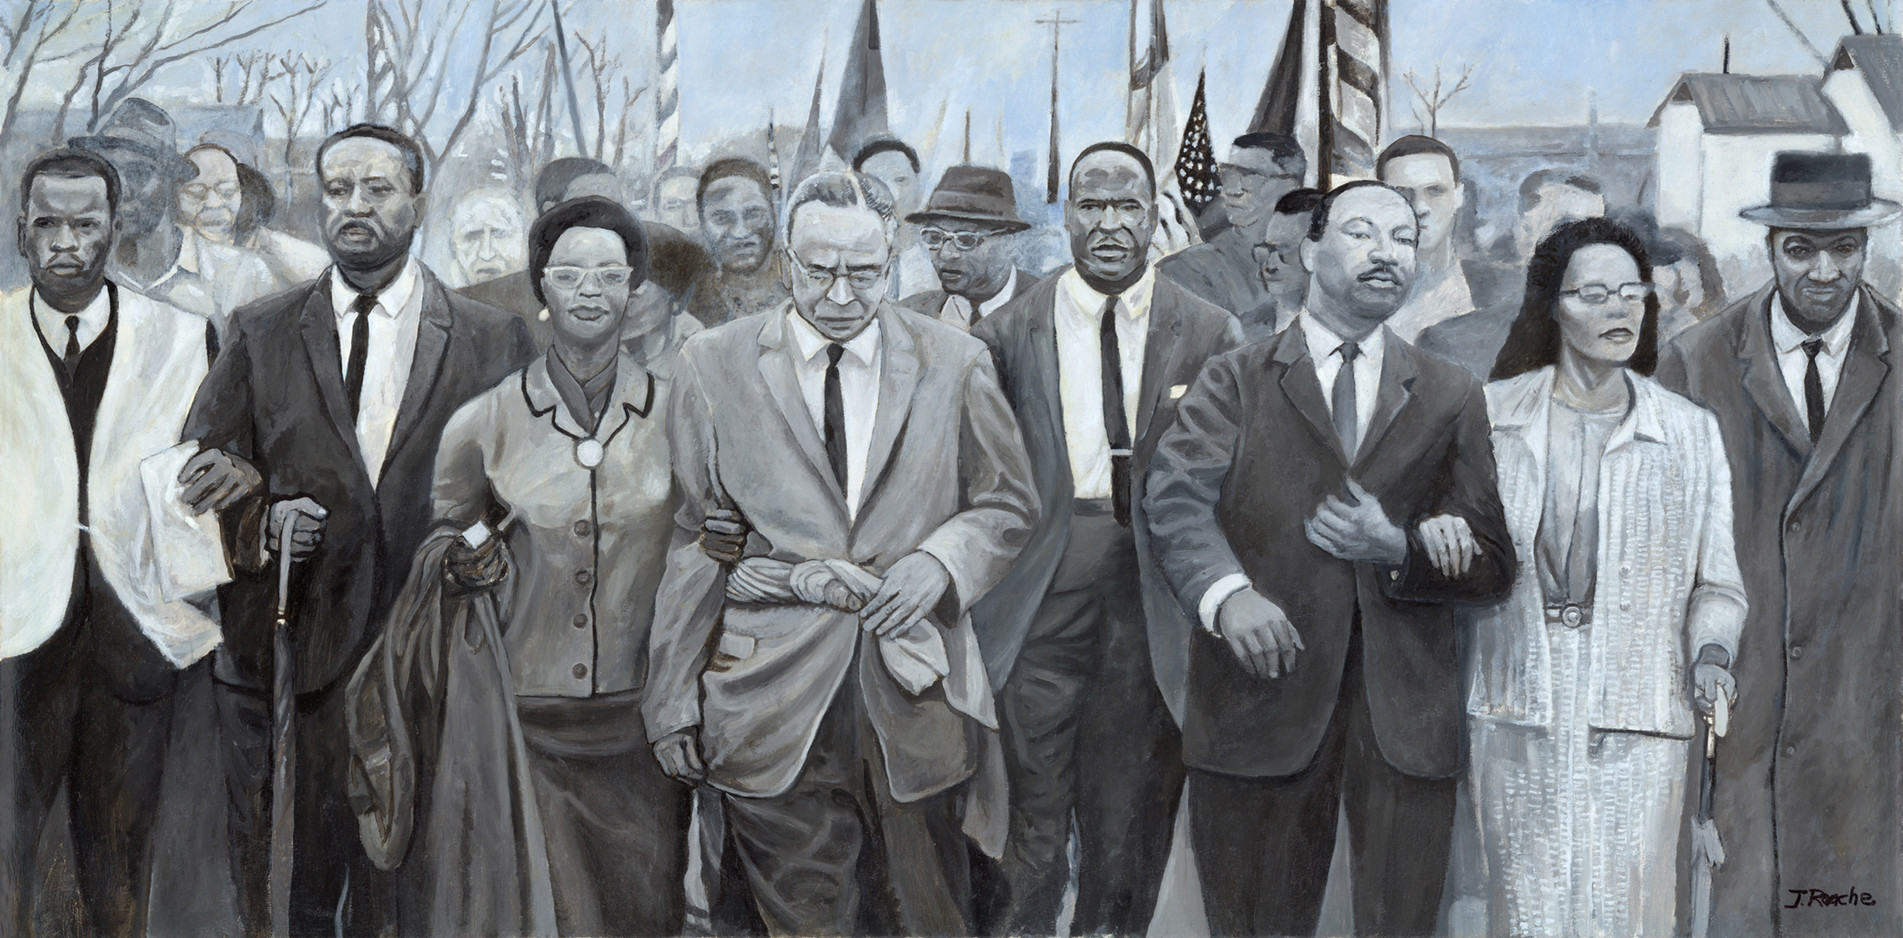 27. The March